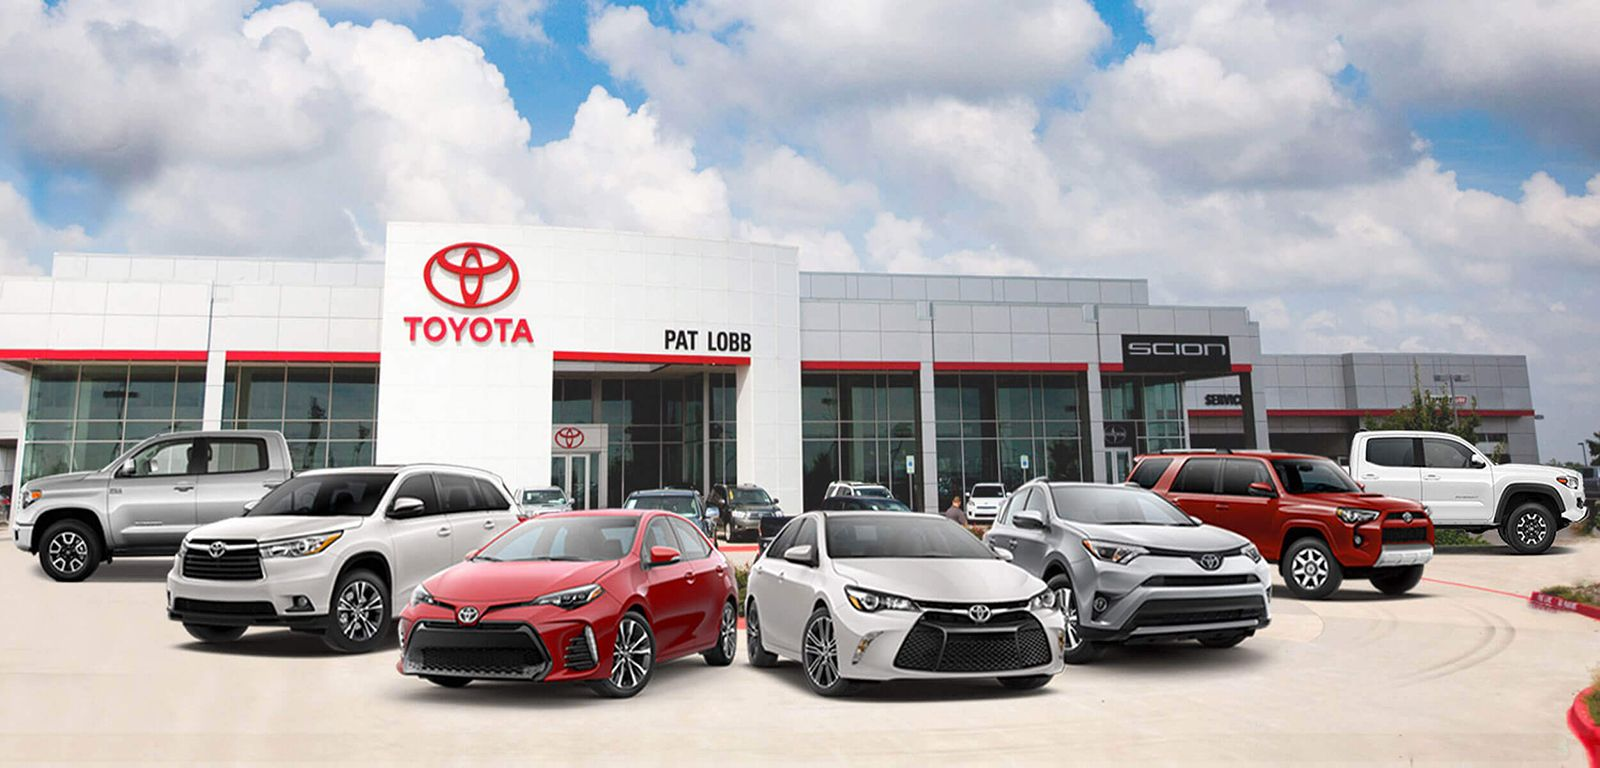 used sudbury near me dealership sale tag toyota for days s in web red lakingtoyota cars header and laking desktop new